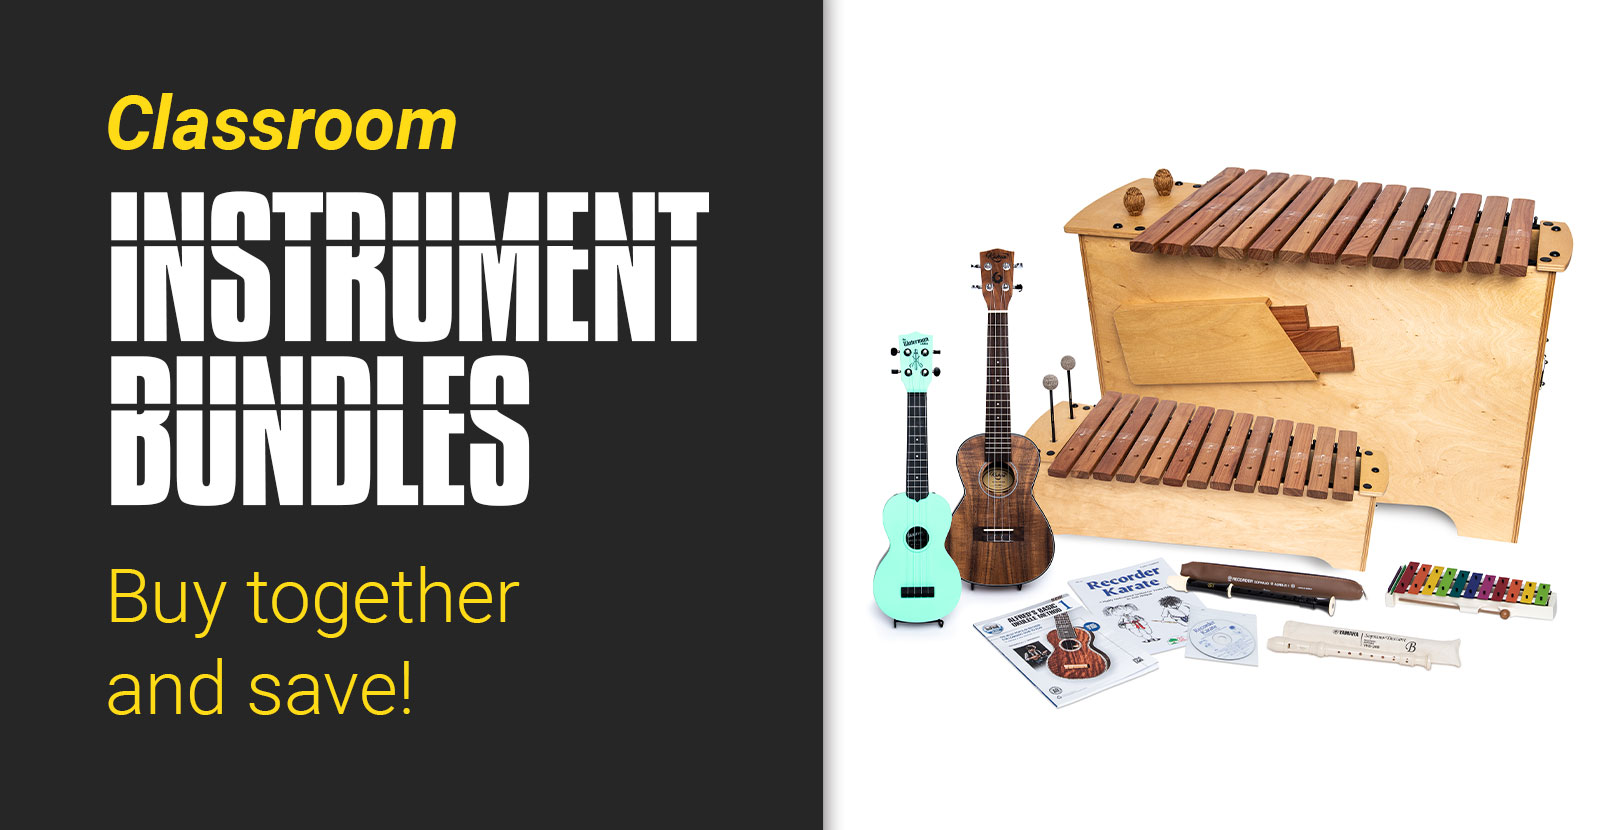 Classroom instrument bundles; buy together and save!